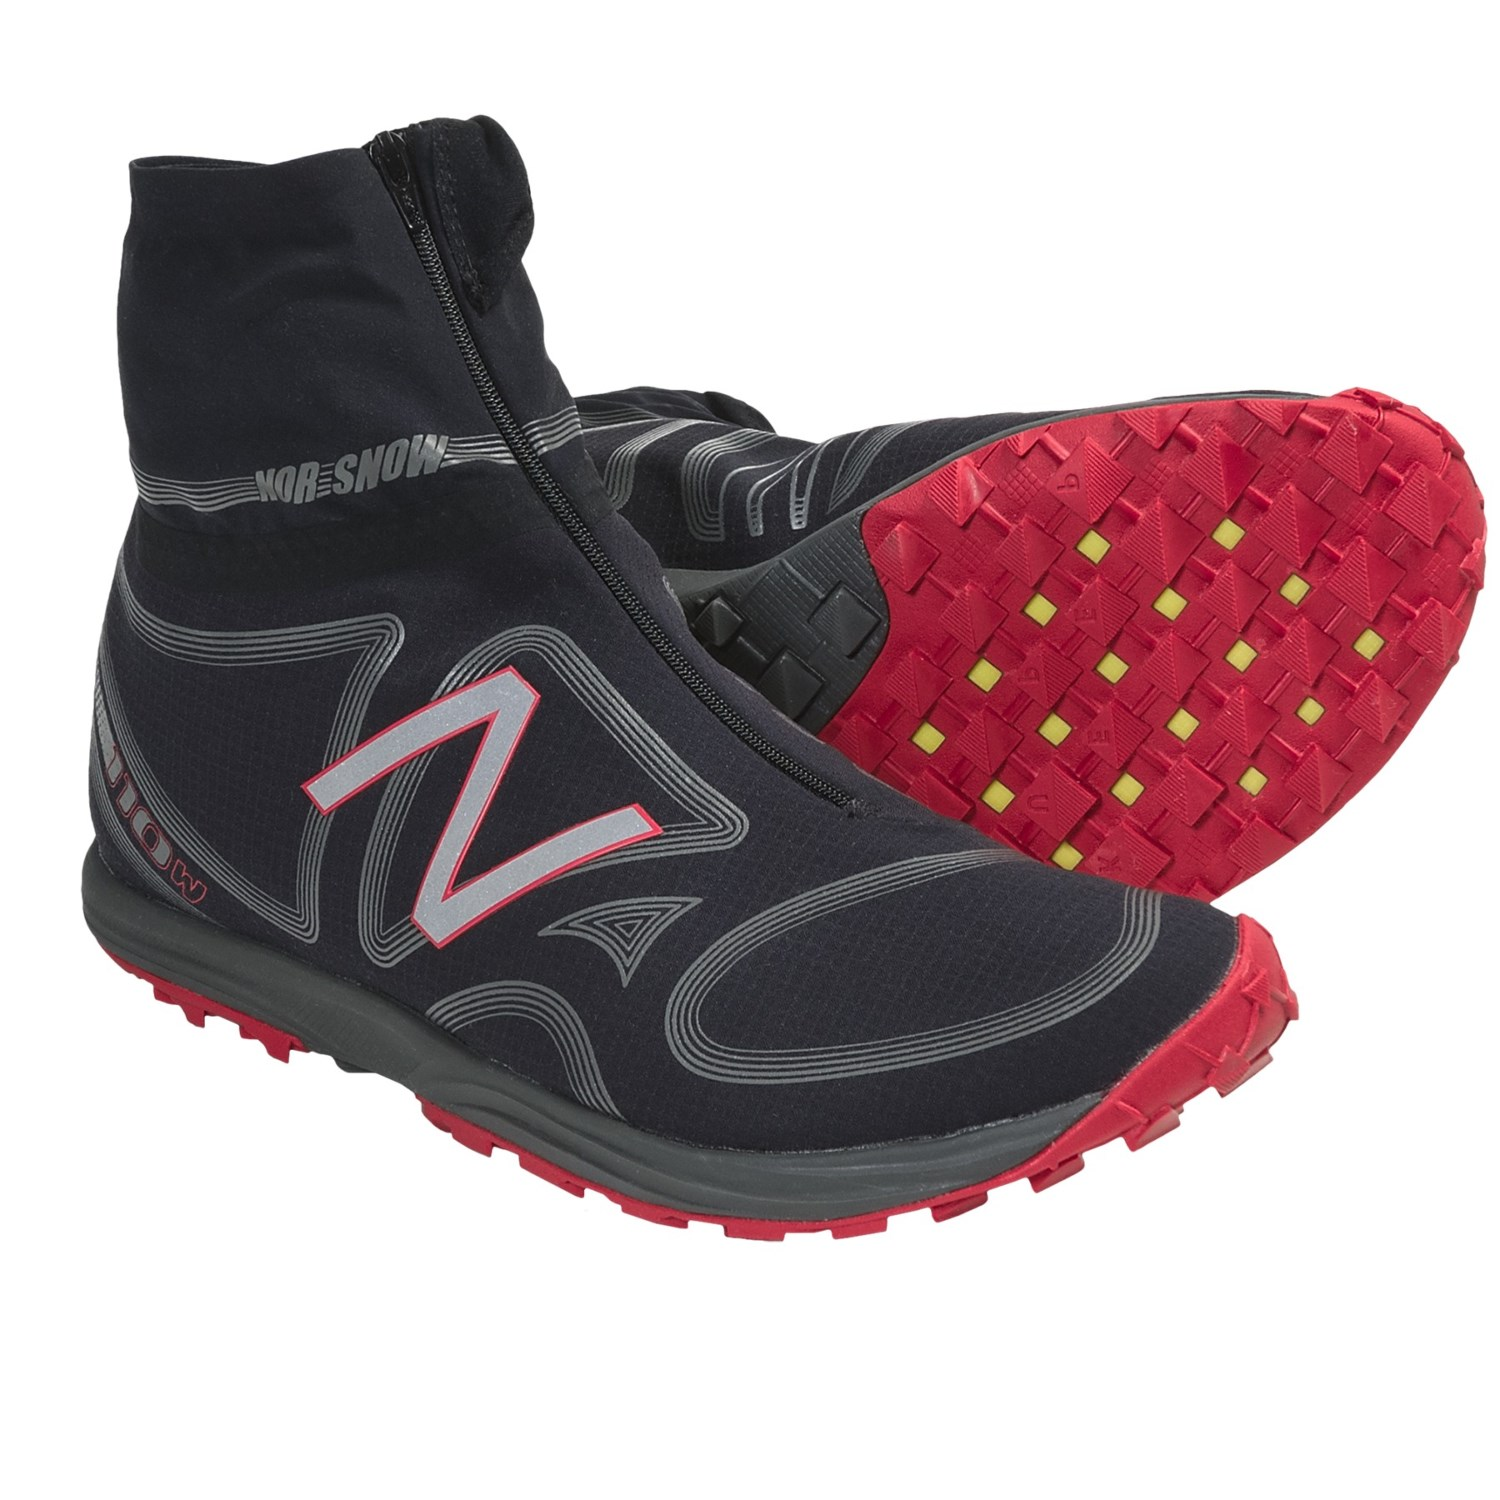 Pokemon Black How To Use Running Shoes